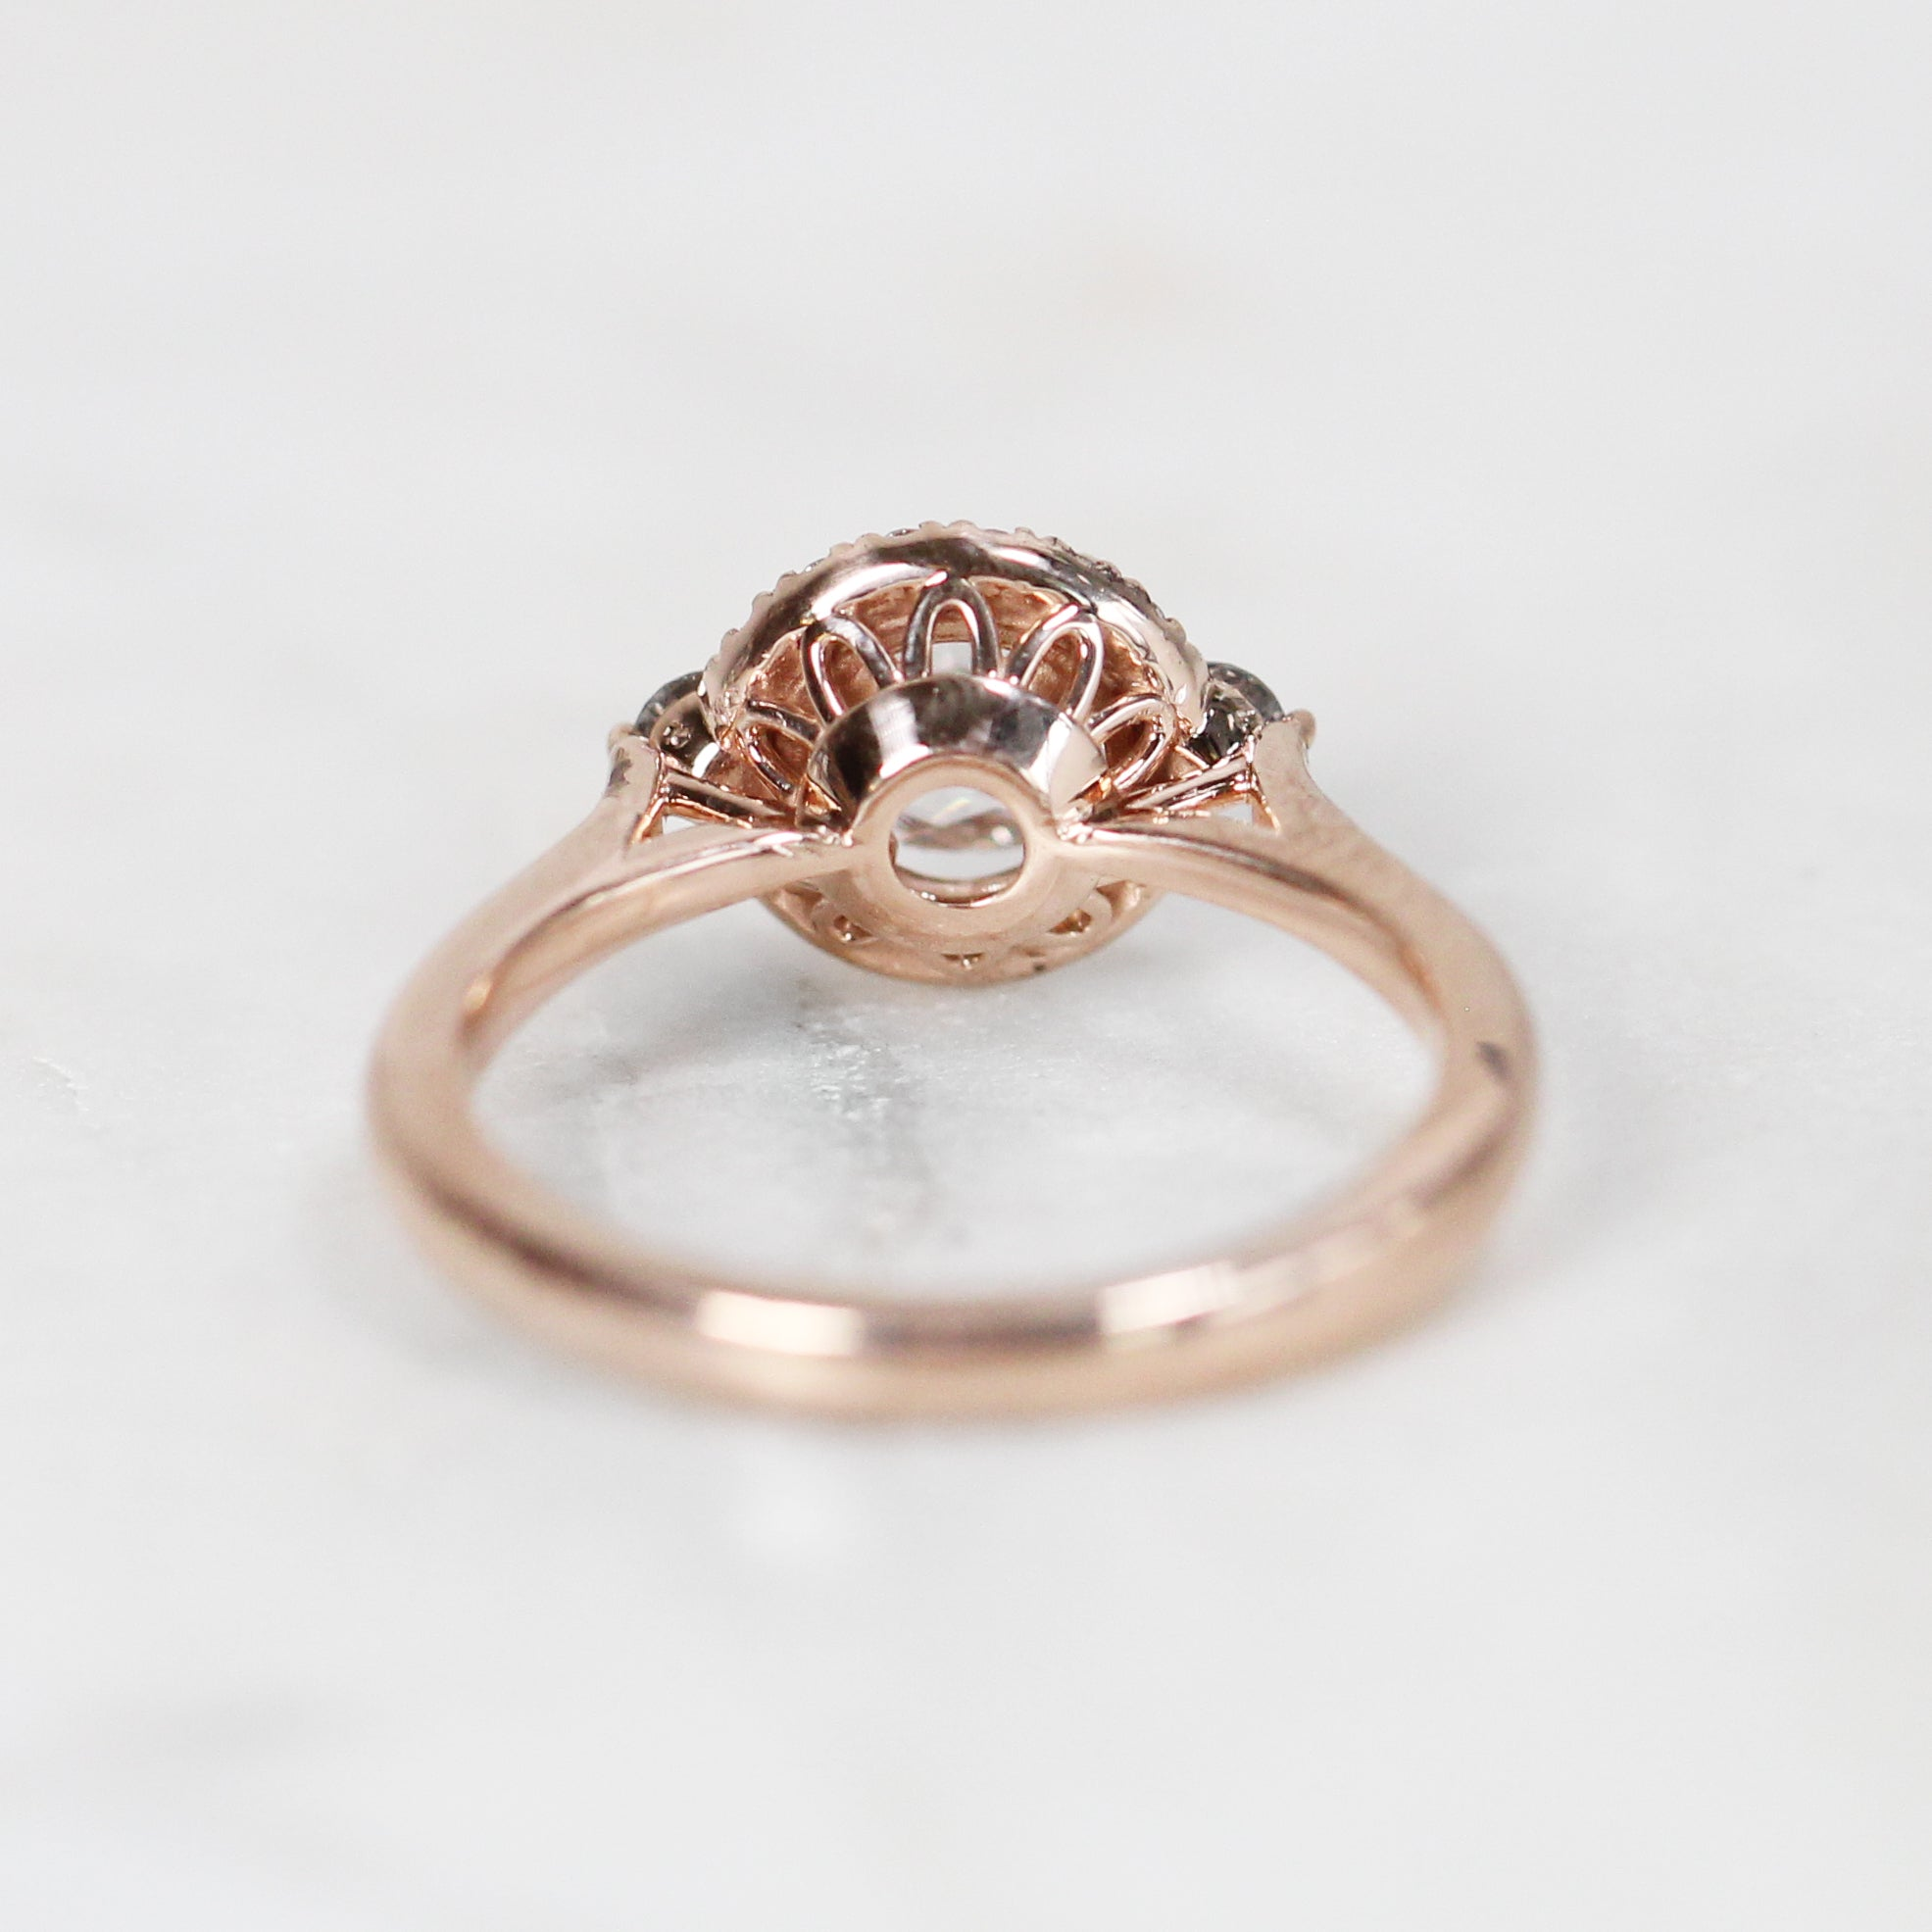 Vanessa Ring with .41 carat Rose Cut Round Diamond in 10k Rose Gold - Ready to Size and Ship - Celestial Diamonds ® by Midwinter Co.